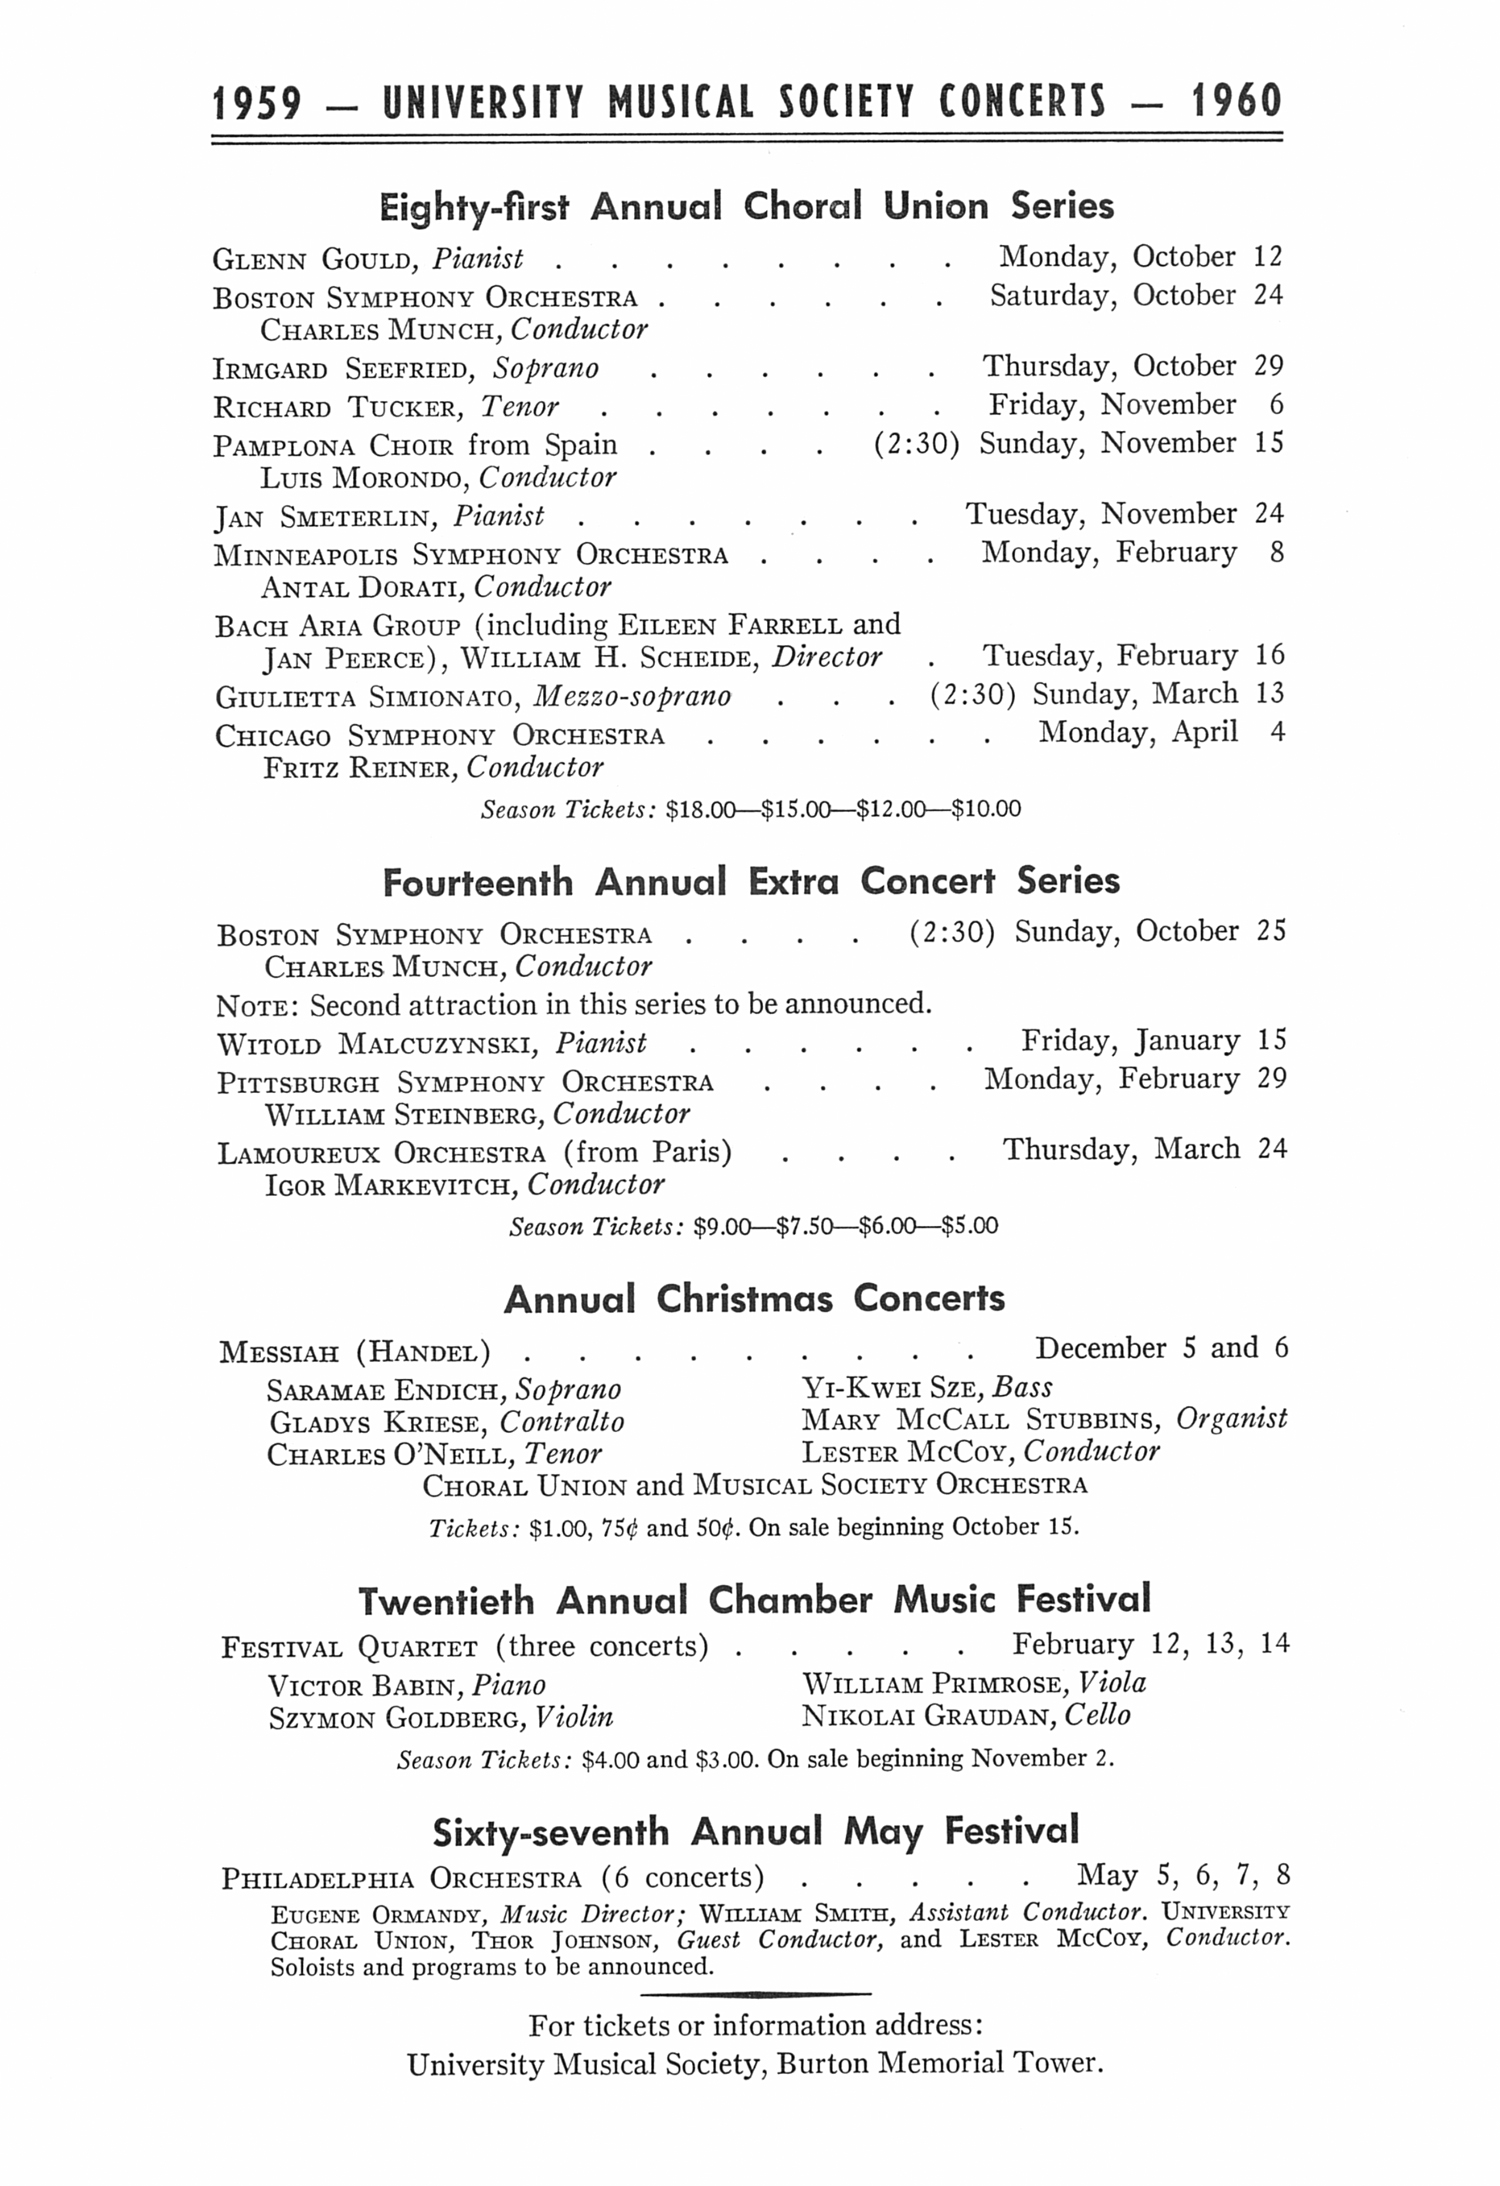 UMS Concert Program, May 1, 1959: Sixty-sixth Annual May Festival -- The Philadelphia Orchestra image